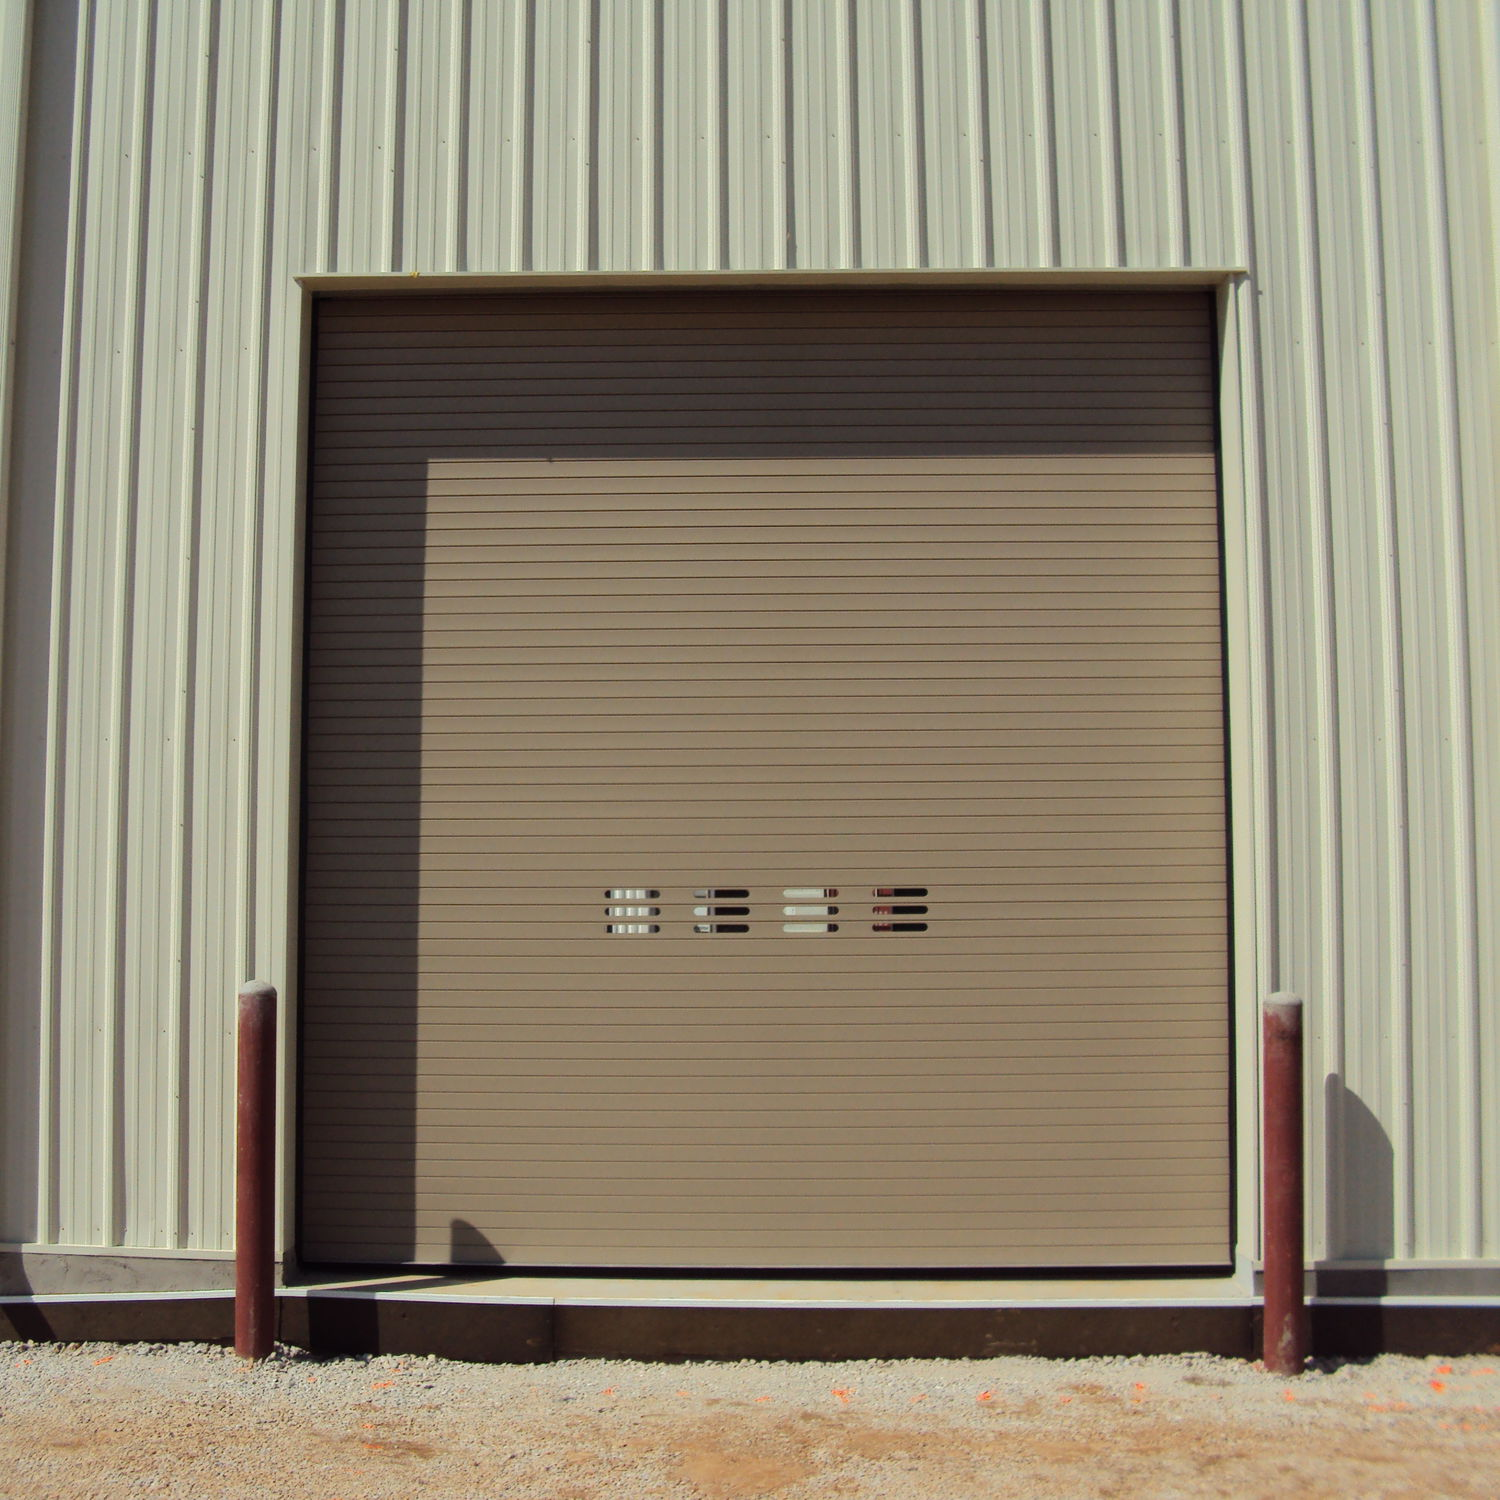 roll-up industrial door / aluminum / galvanized steel / stainless steel - THERMISER MAX® & Roll-up industrial door / aluminum / galvanized steel / stainless ...